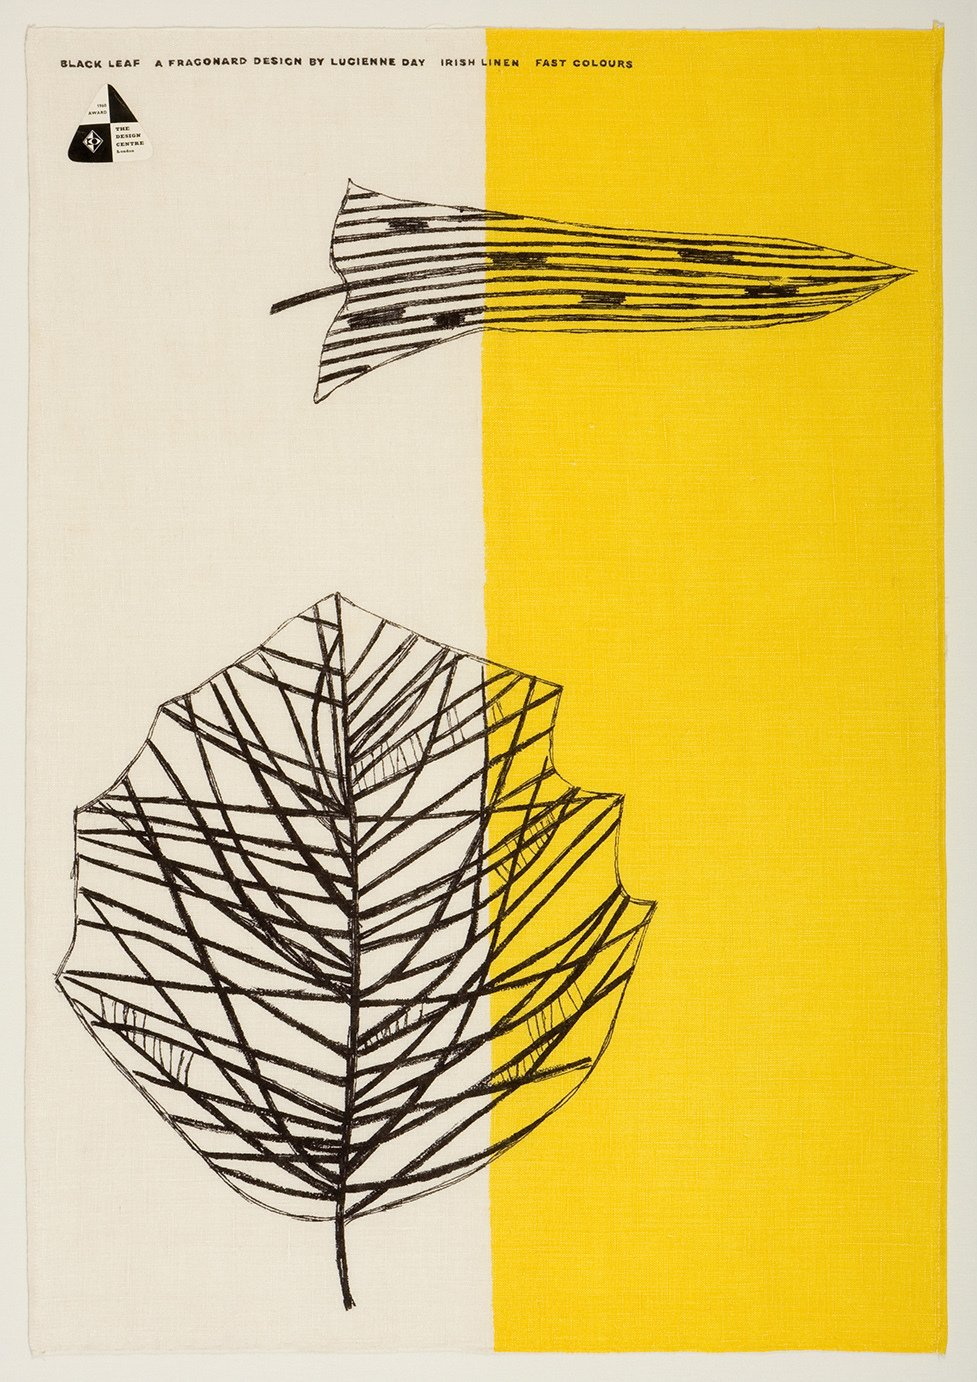 .Lucienne Day's Black Leaf tea towel for Thomas Somerset (1959) exemplifies her fascination with modern art and plant life. Image courtesy of The Robin & Lucienne Day Foundation. Collection of Jill A. Wiltse and H. Kirk Brown III, Denver.